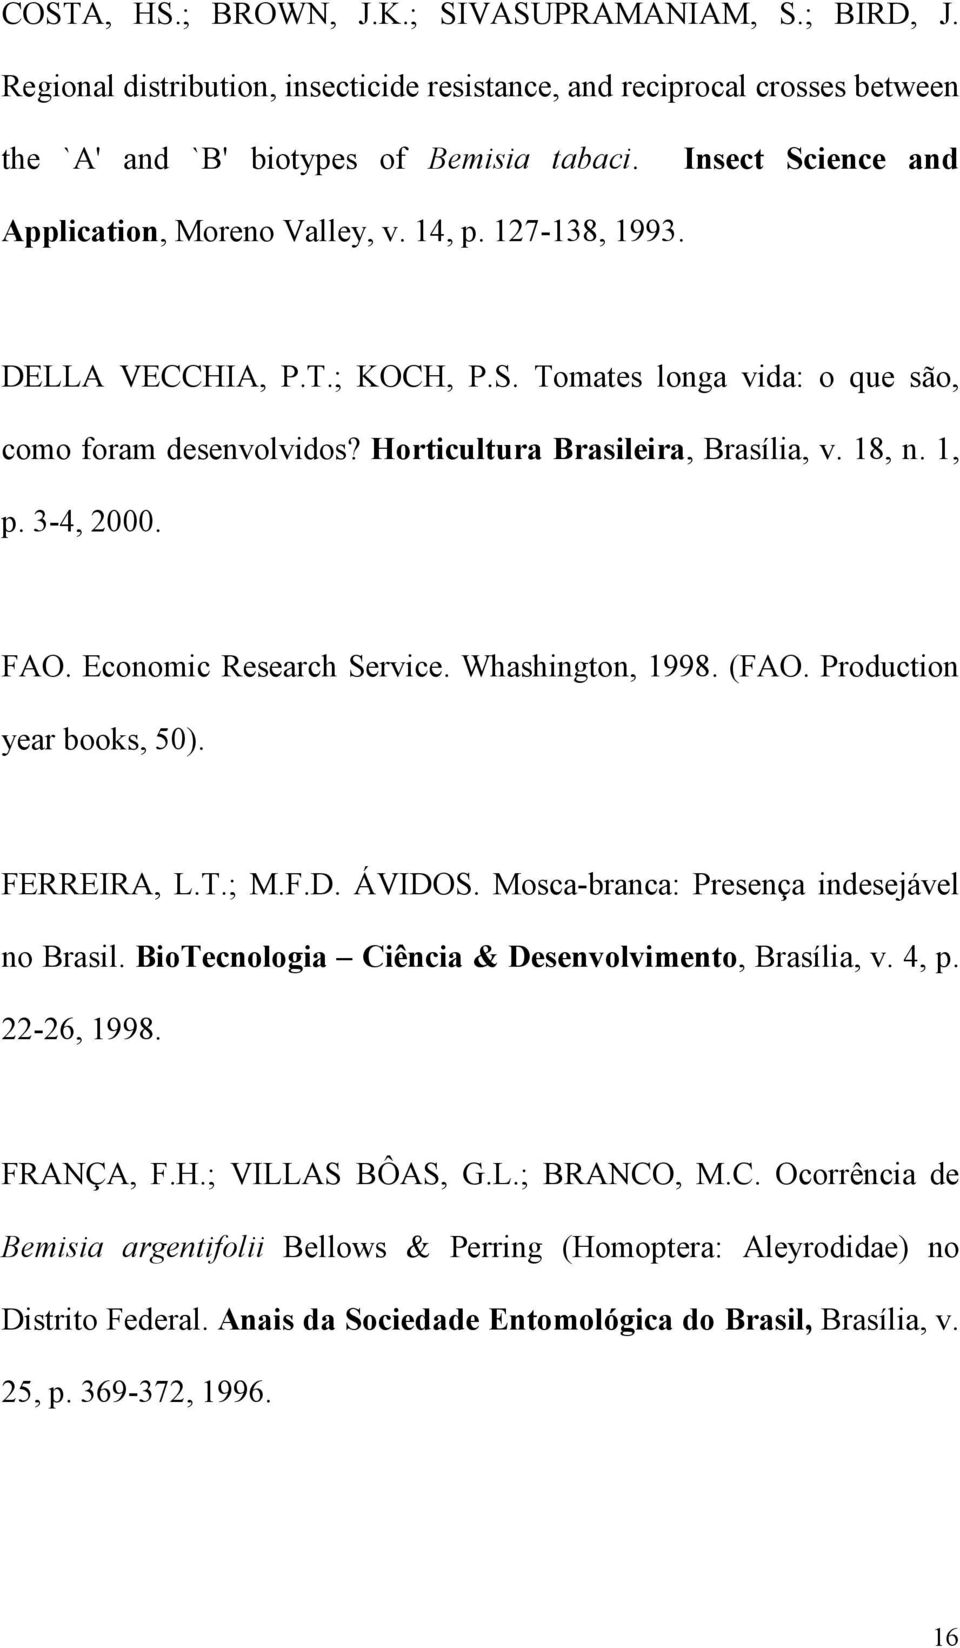 18, n. 1, p. 3-4, 2000. FAO. Economic Research Service. Whashington, 1998. (FAO. Production year books, 50). FERREIRA, L.T.; M.F.D. ÁVIDOS. Mosca-branca: Presença indesejável no Brasil.